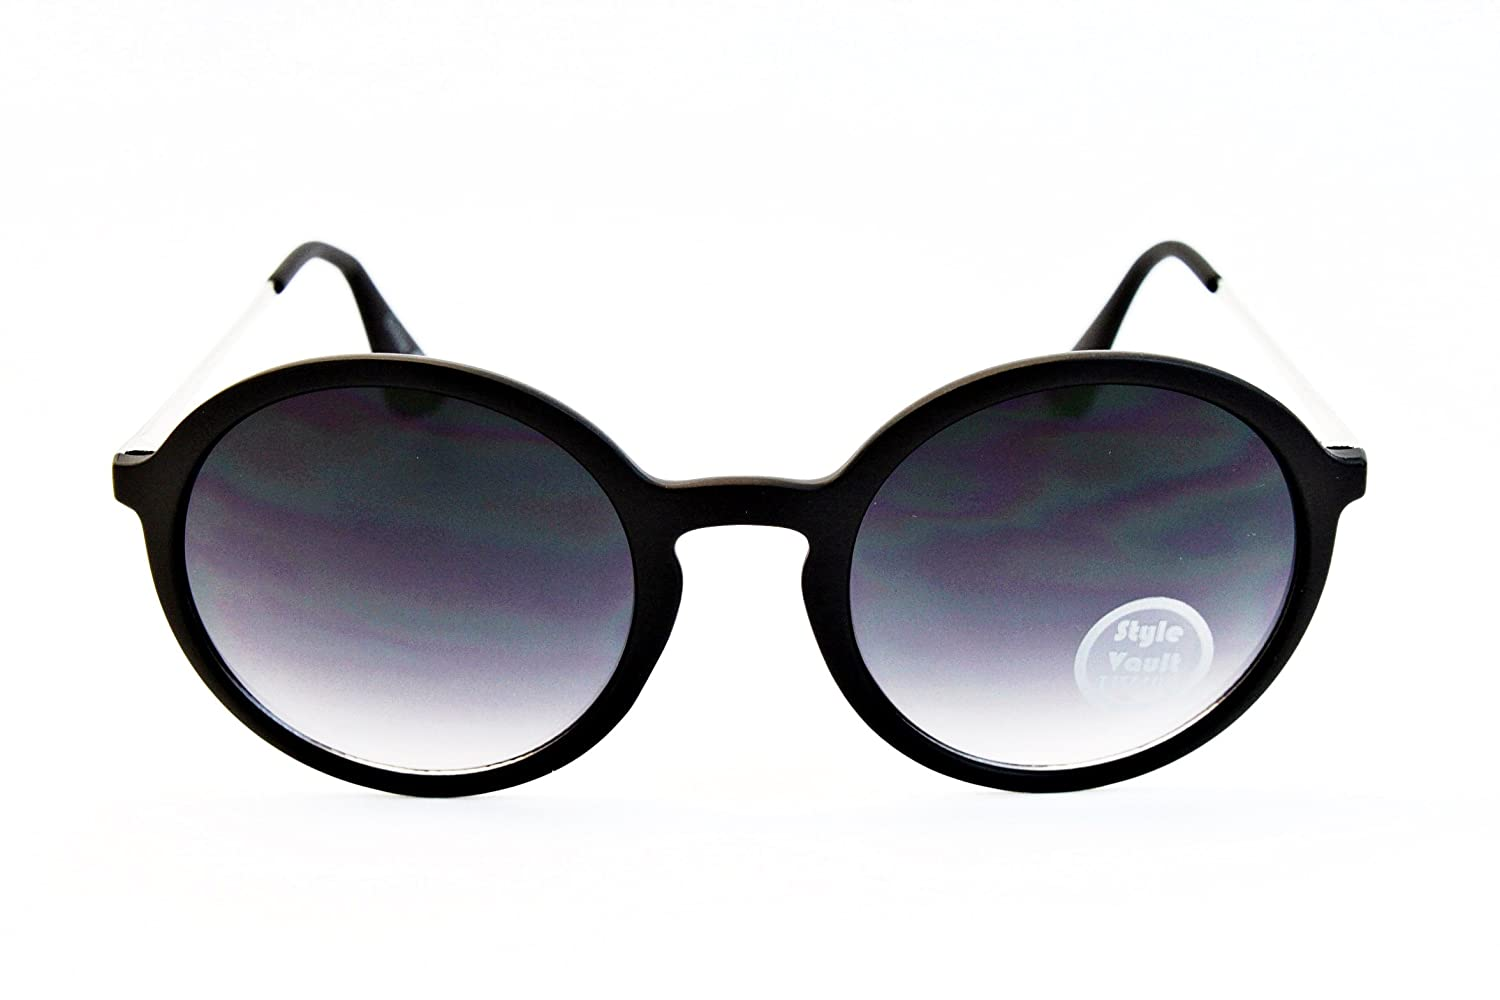 V3072-VP Style Vault Round Metal Temple Sunglasses